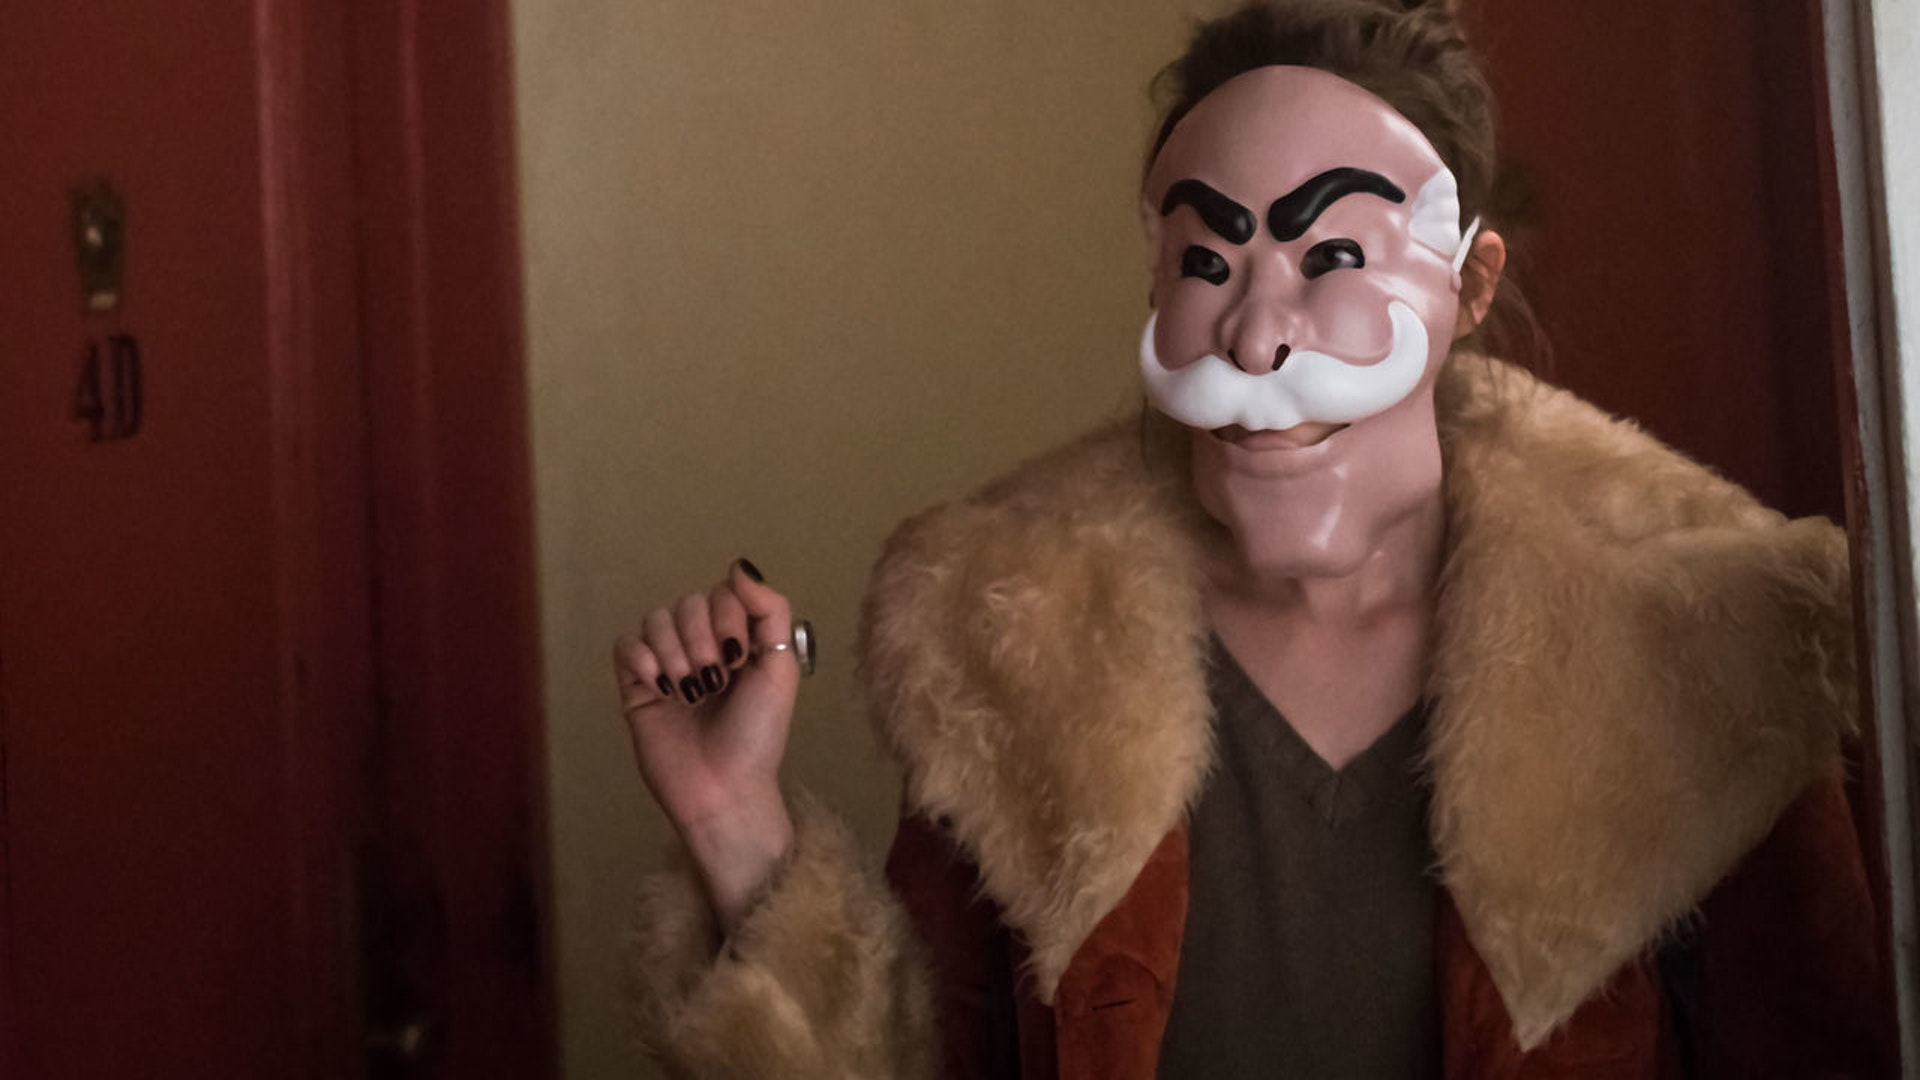 This week's 'Mr. Robot' begins with a flashback to one Halloween night when Darlene (Carly Chaikan) finds a cheap mask from a horror movie she and Elliot loved as kids -- and the beginning of fsociety.